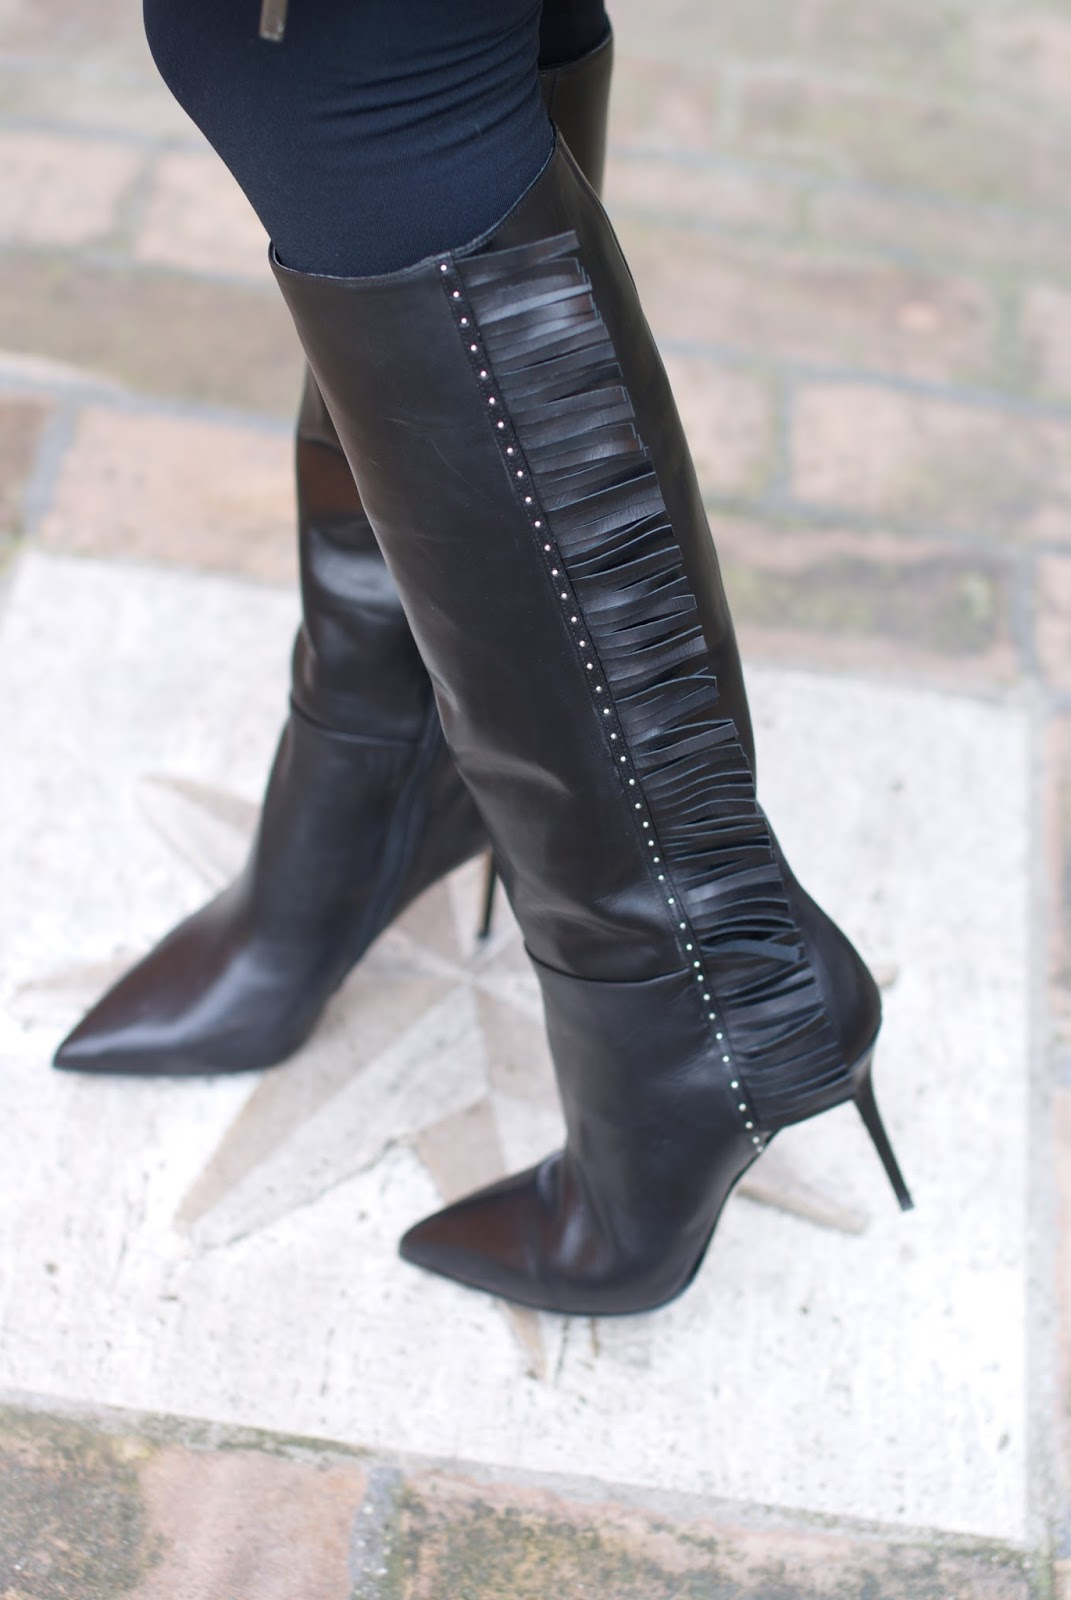 Le Silla fringed boots on Fashion and Cookies fashion blog, fashion blogger style